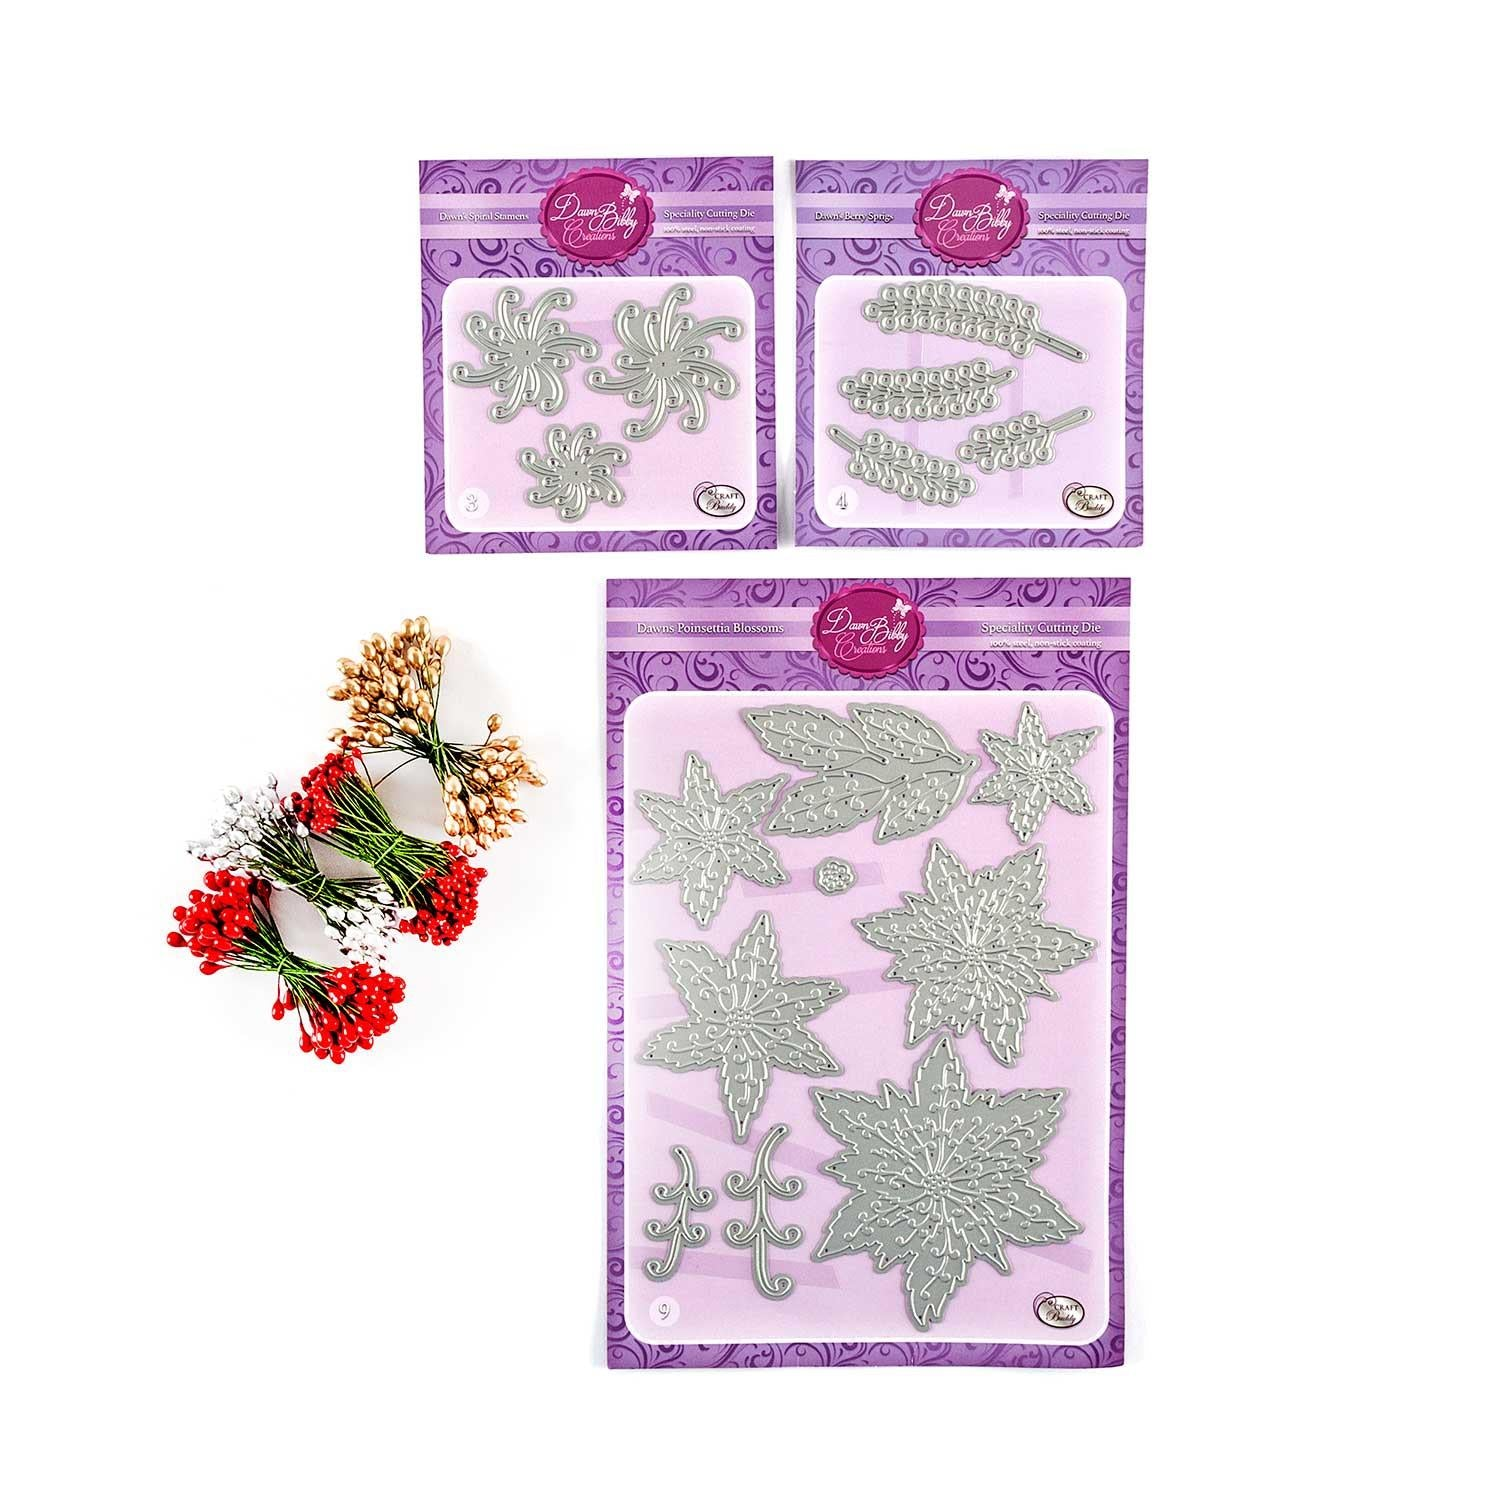 Poinsettia Die Set - 16 Dies in Total with Free Gift - 4 Bunches of Festive Flower Stamens